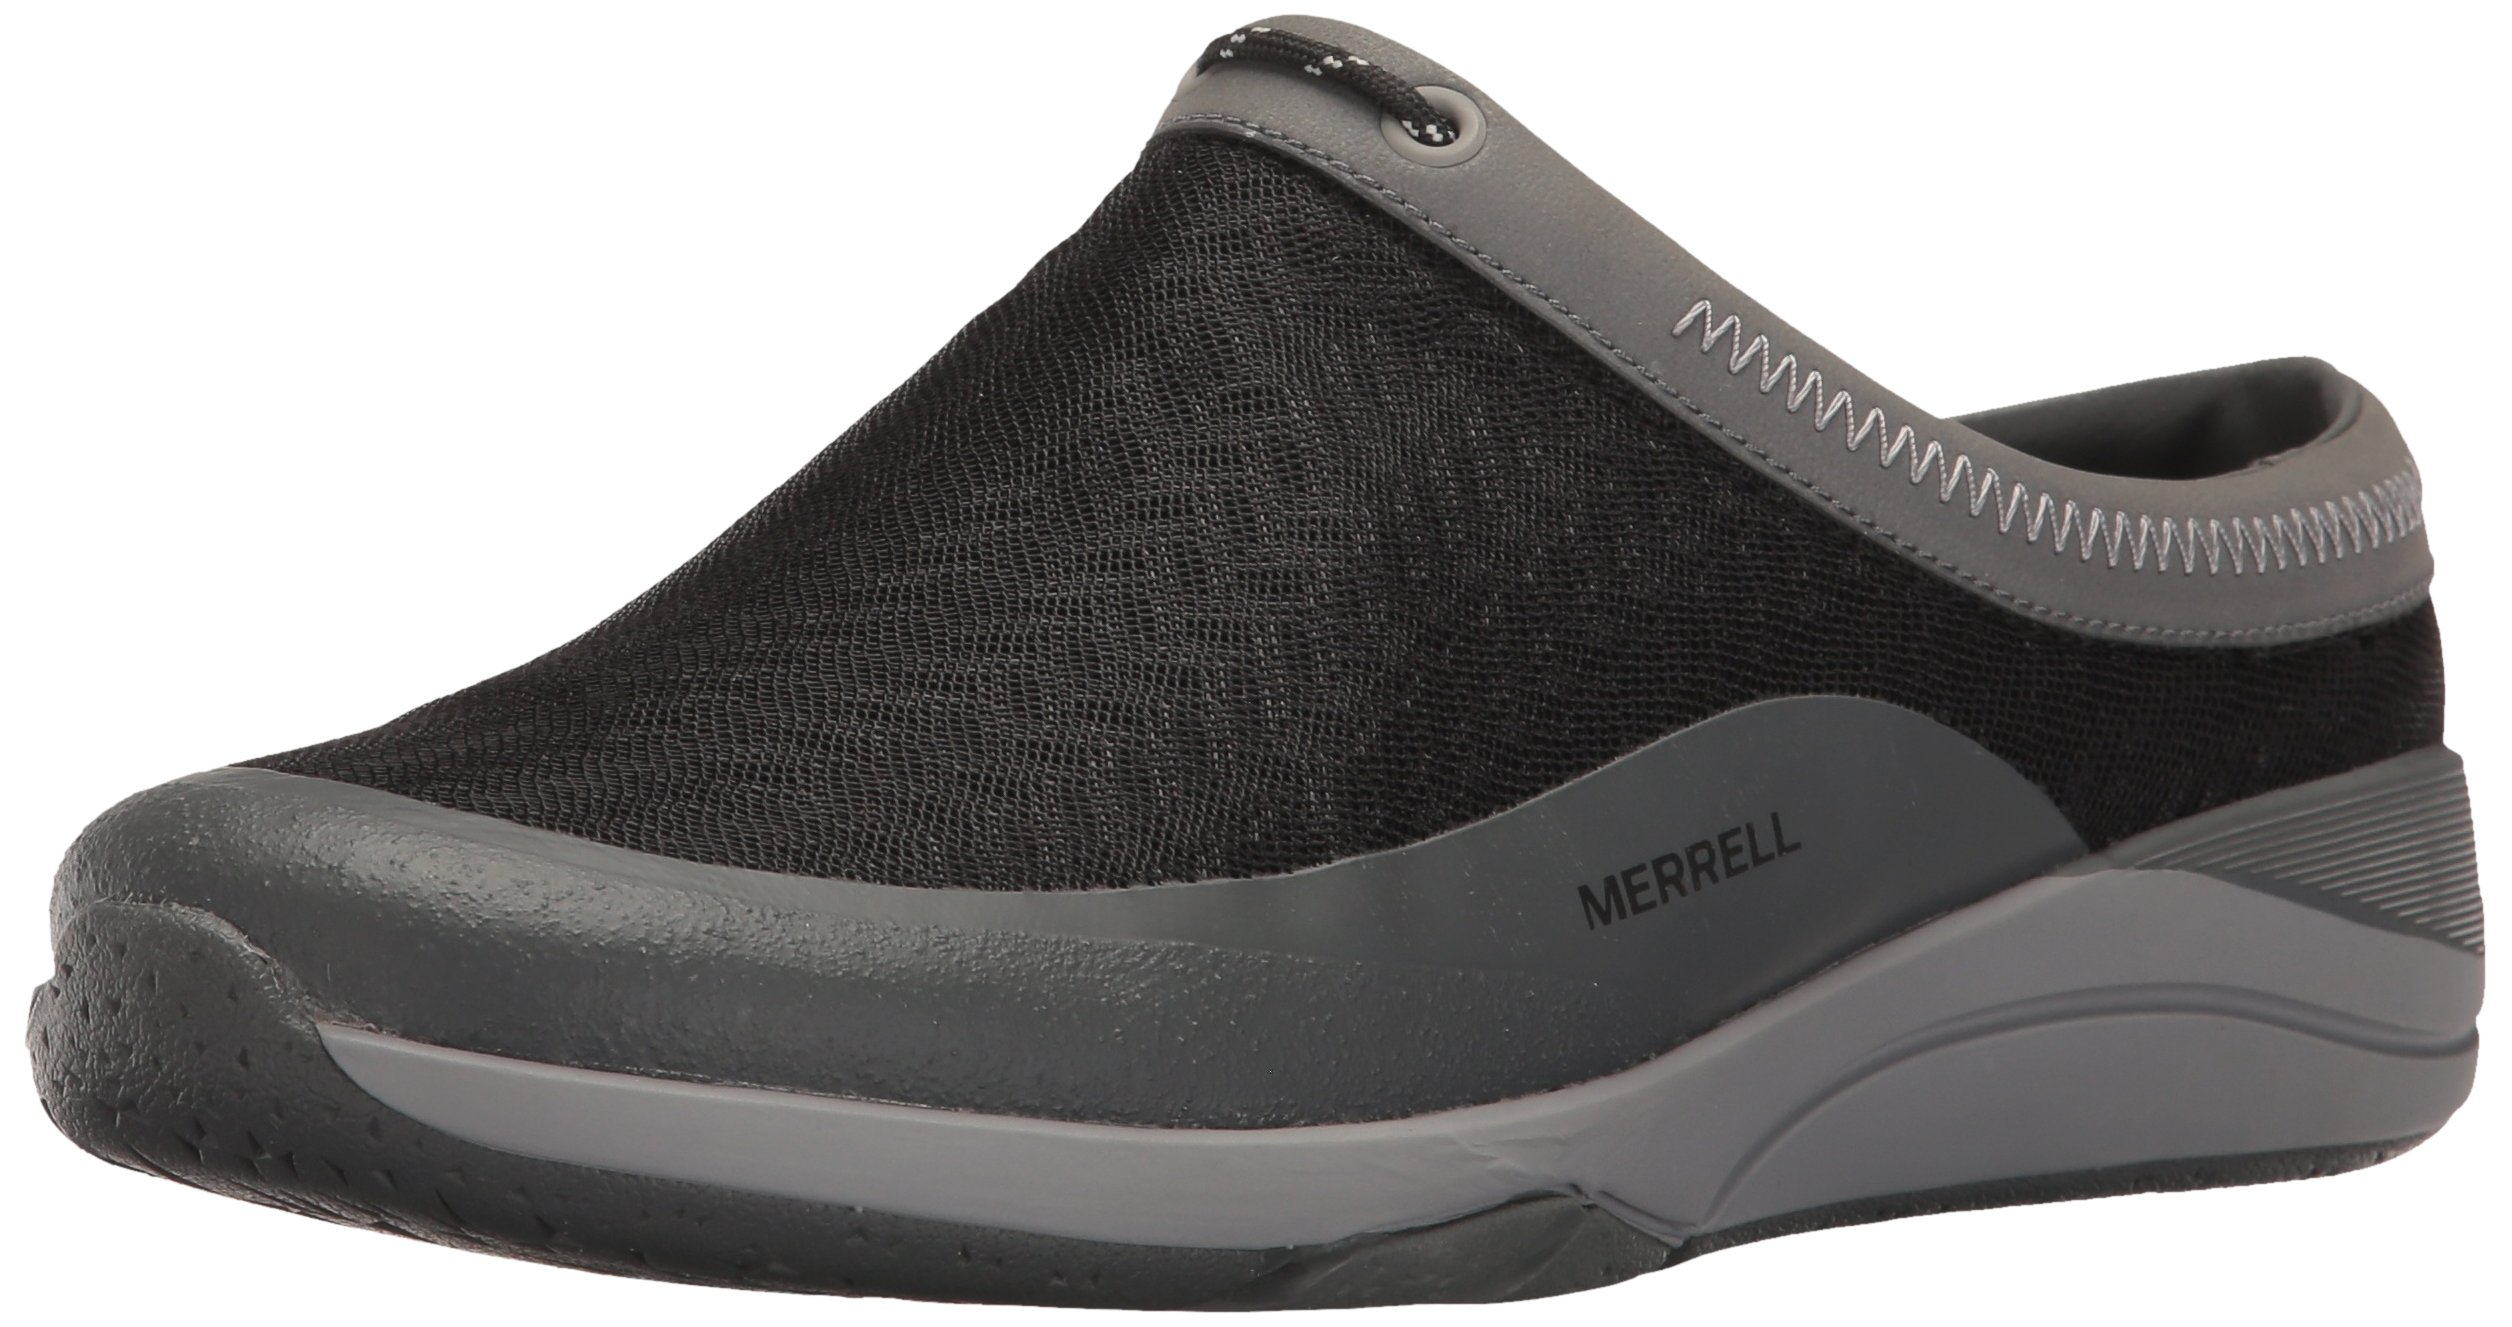 Merrell Women's Applaud Mesh Slide Hiking Shoe, Black, 8 M US